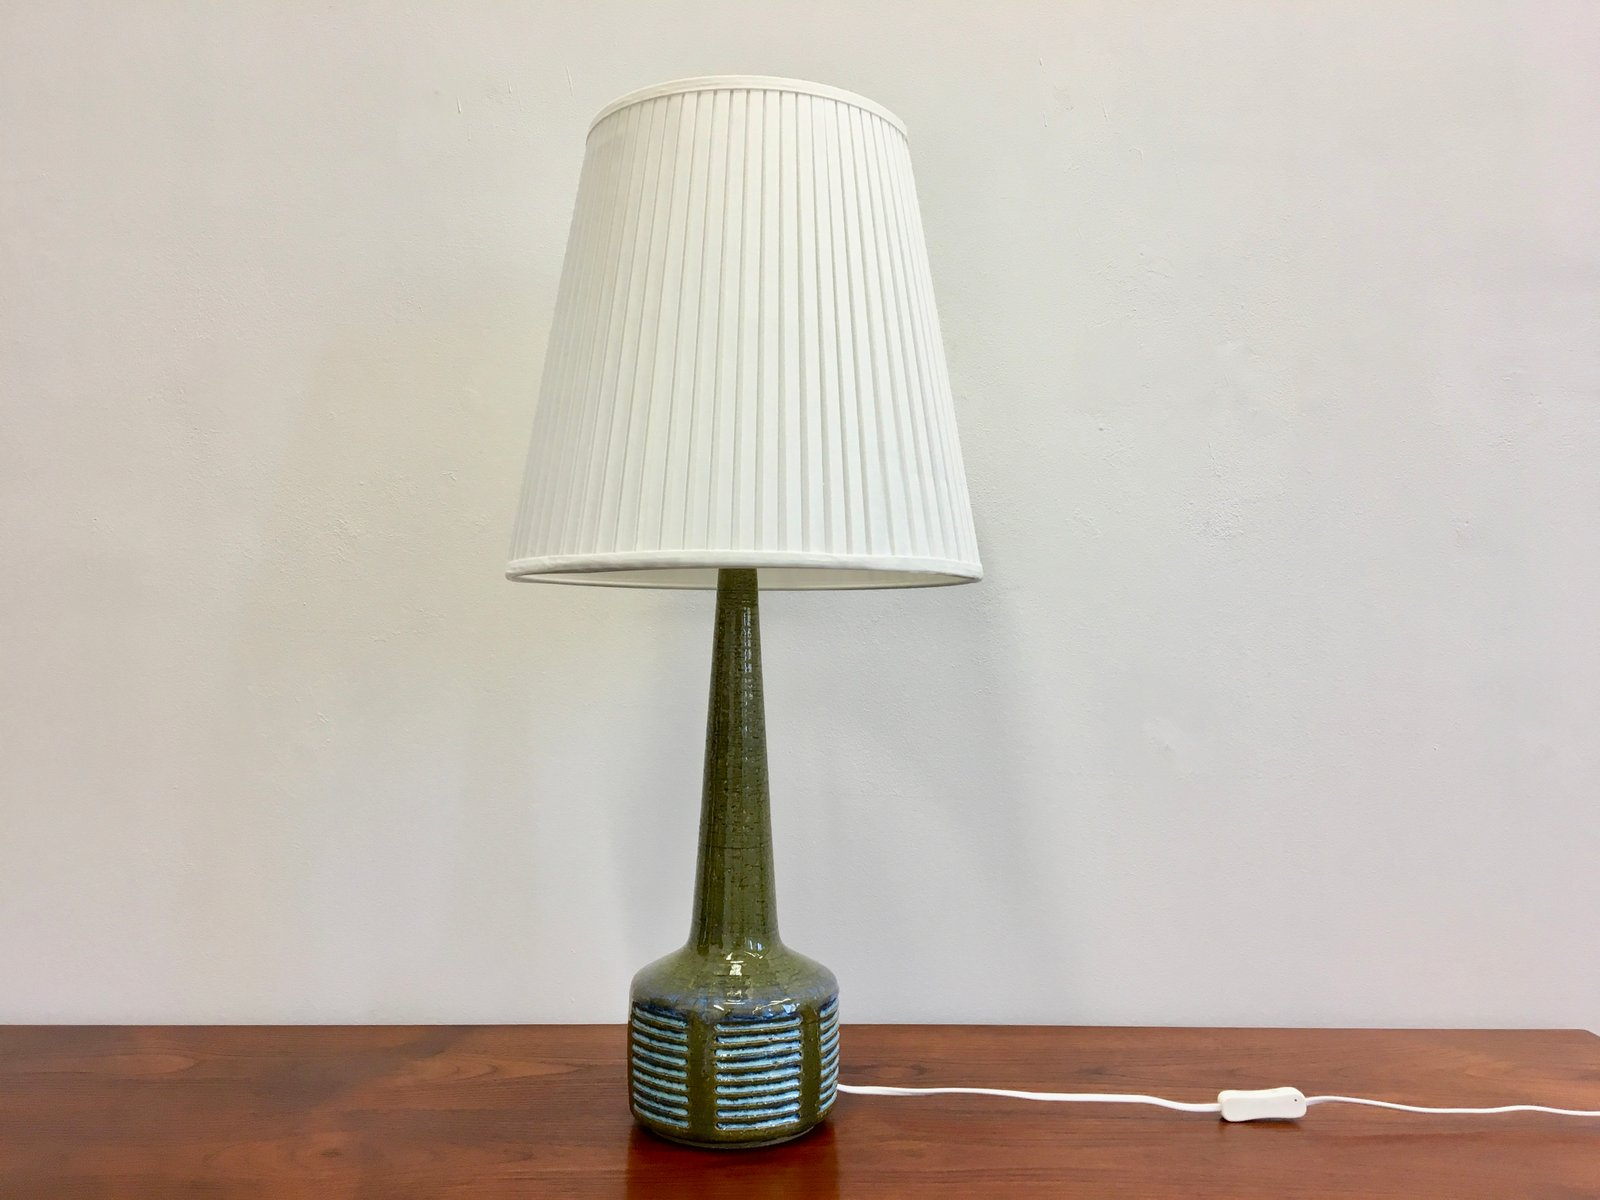 Mid century danish green ceramic table lamp by per linnemann schmidt mid century danish green ceramic table lamp by per linnemann schmidt for palshus mozeypictures Choice Image